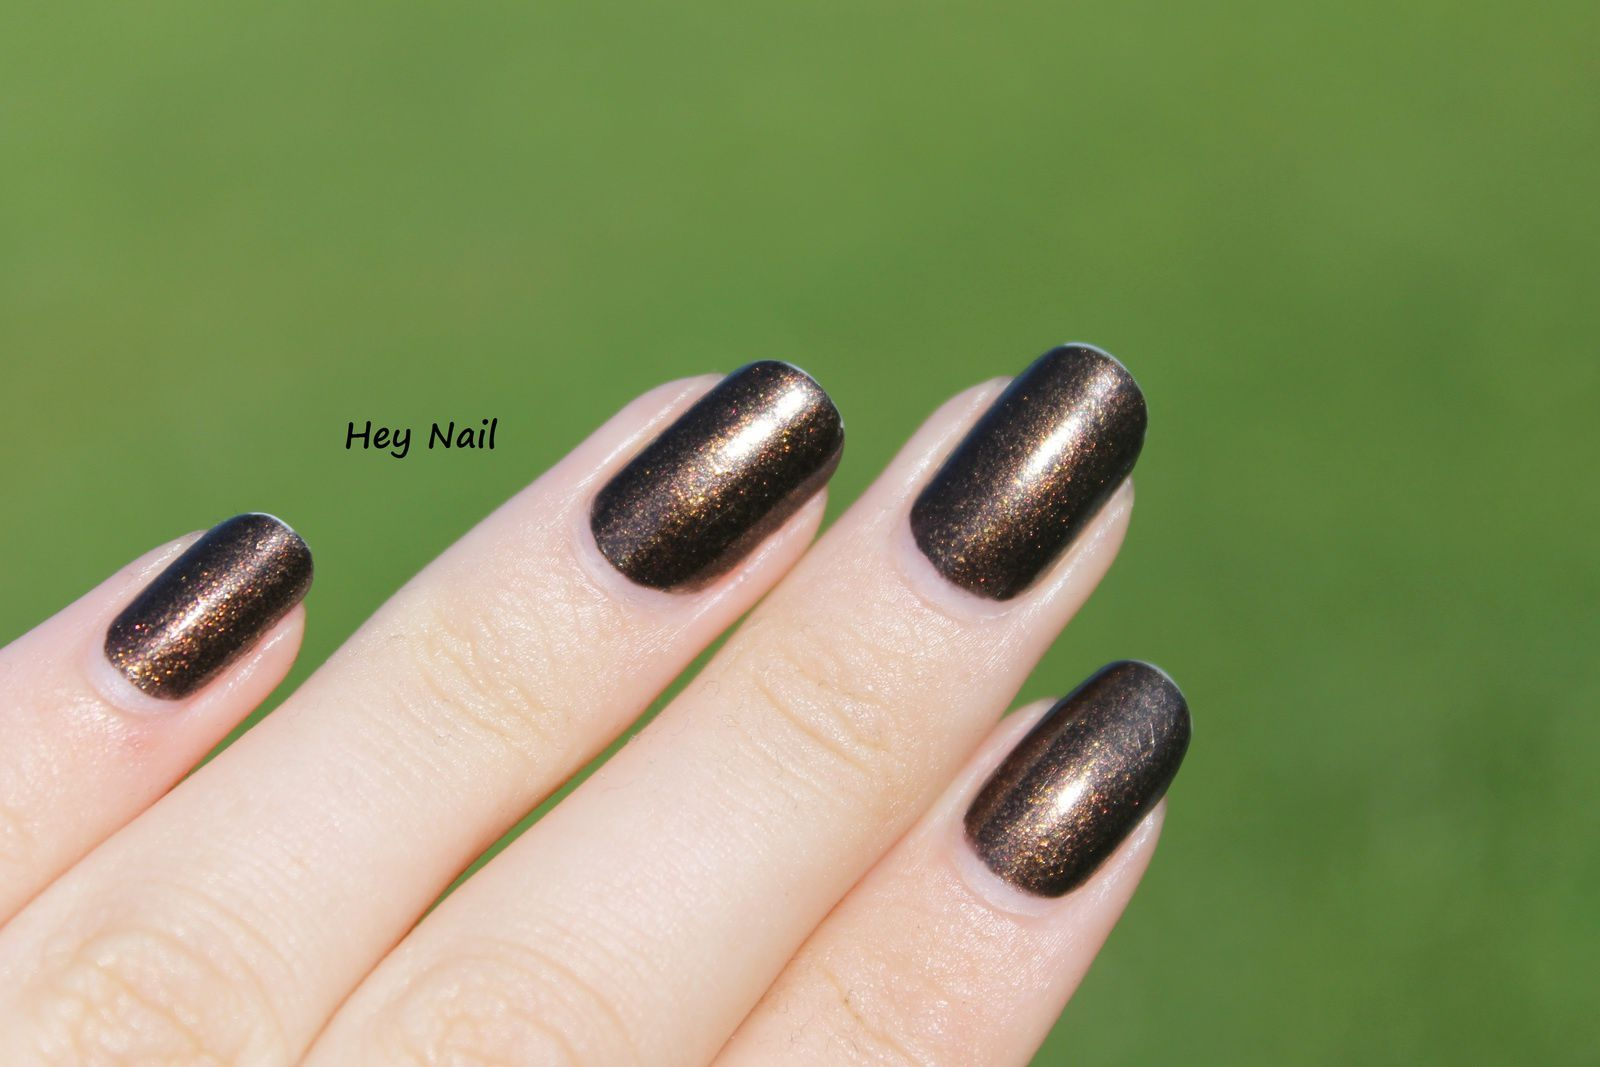 Kiko n°514 - Pearly Golden Coffee